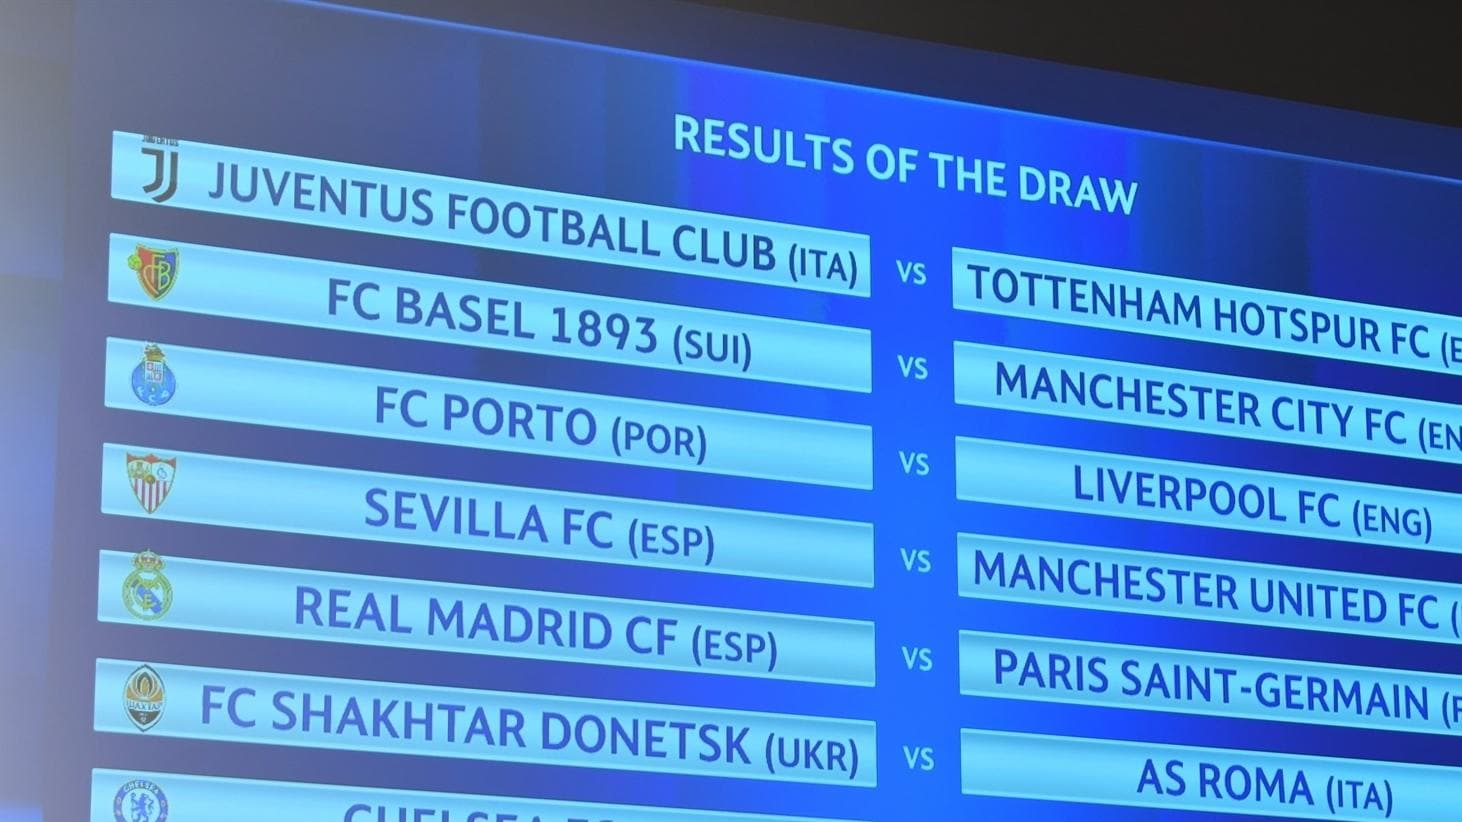 uefa youth league results and table uefa youth league results and table